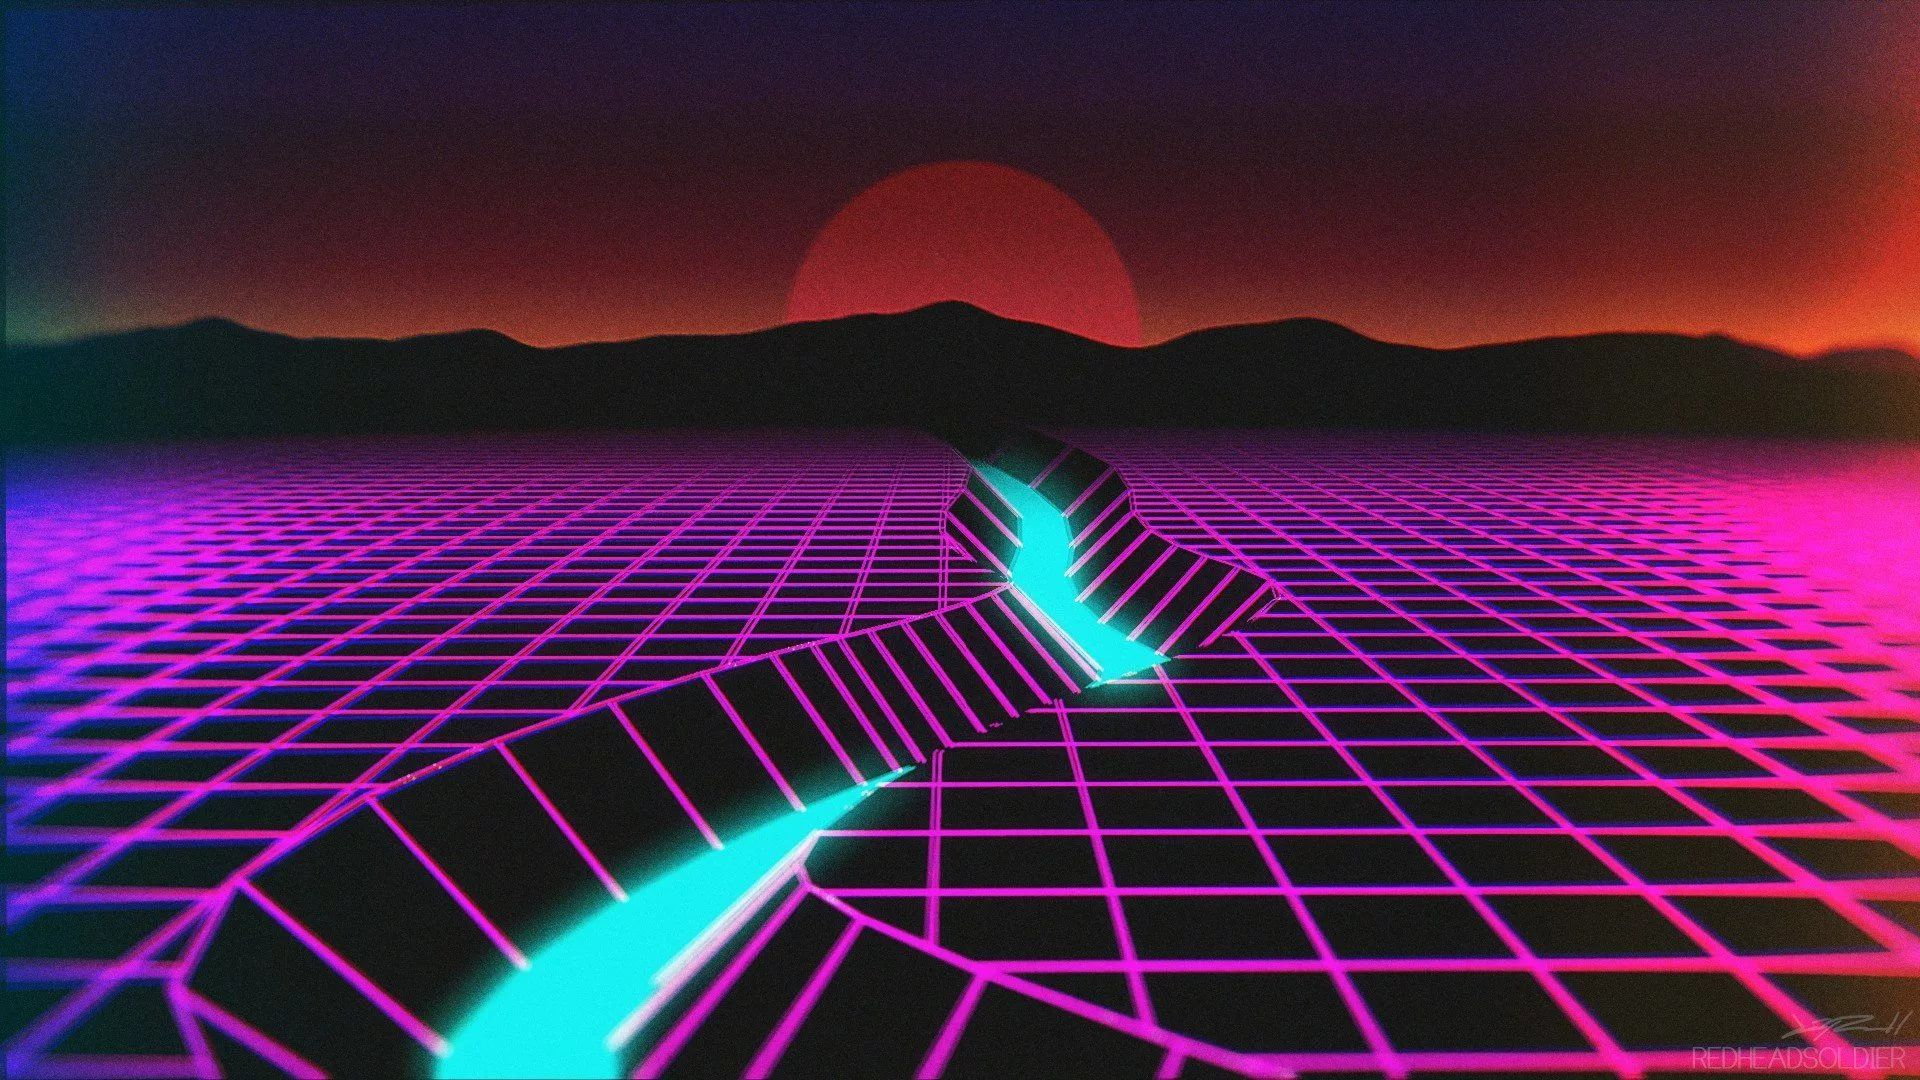 Synthwave 1080p Wallpaper